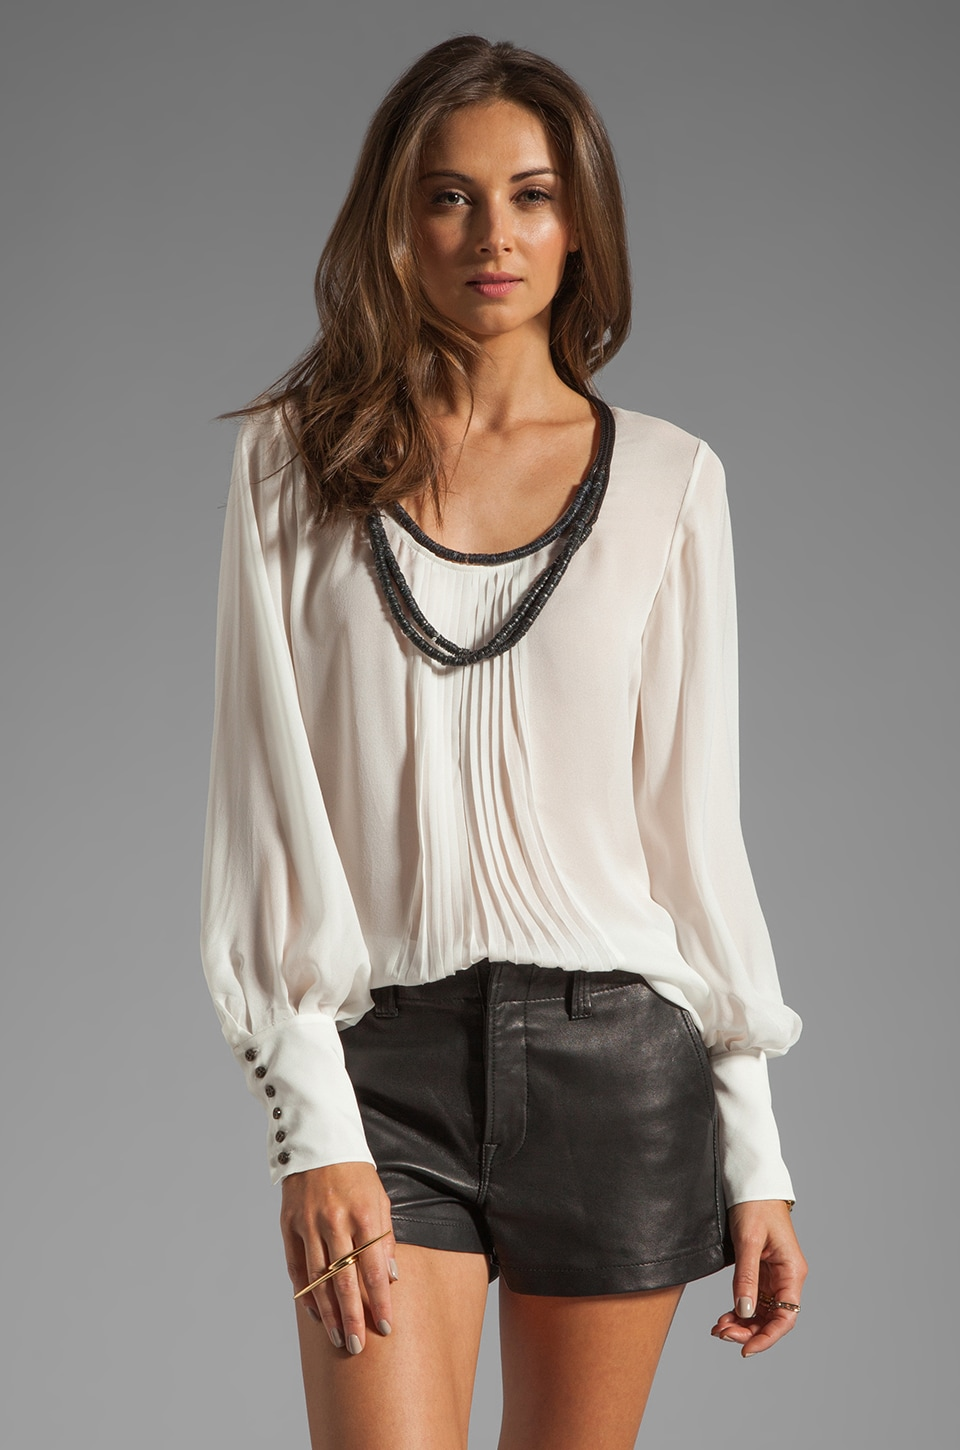 Elizabeth and James Natalie Blouse in Ivory/Black